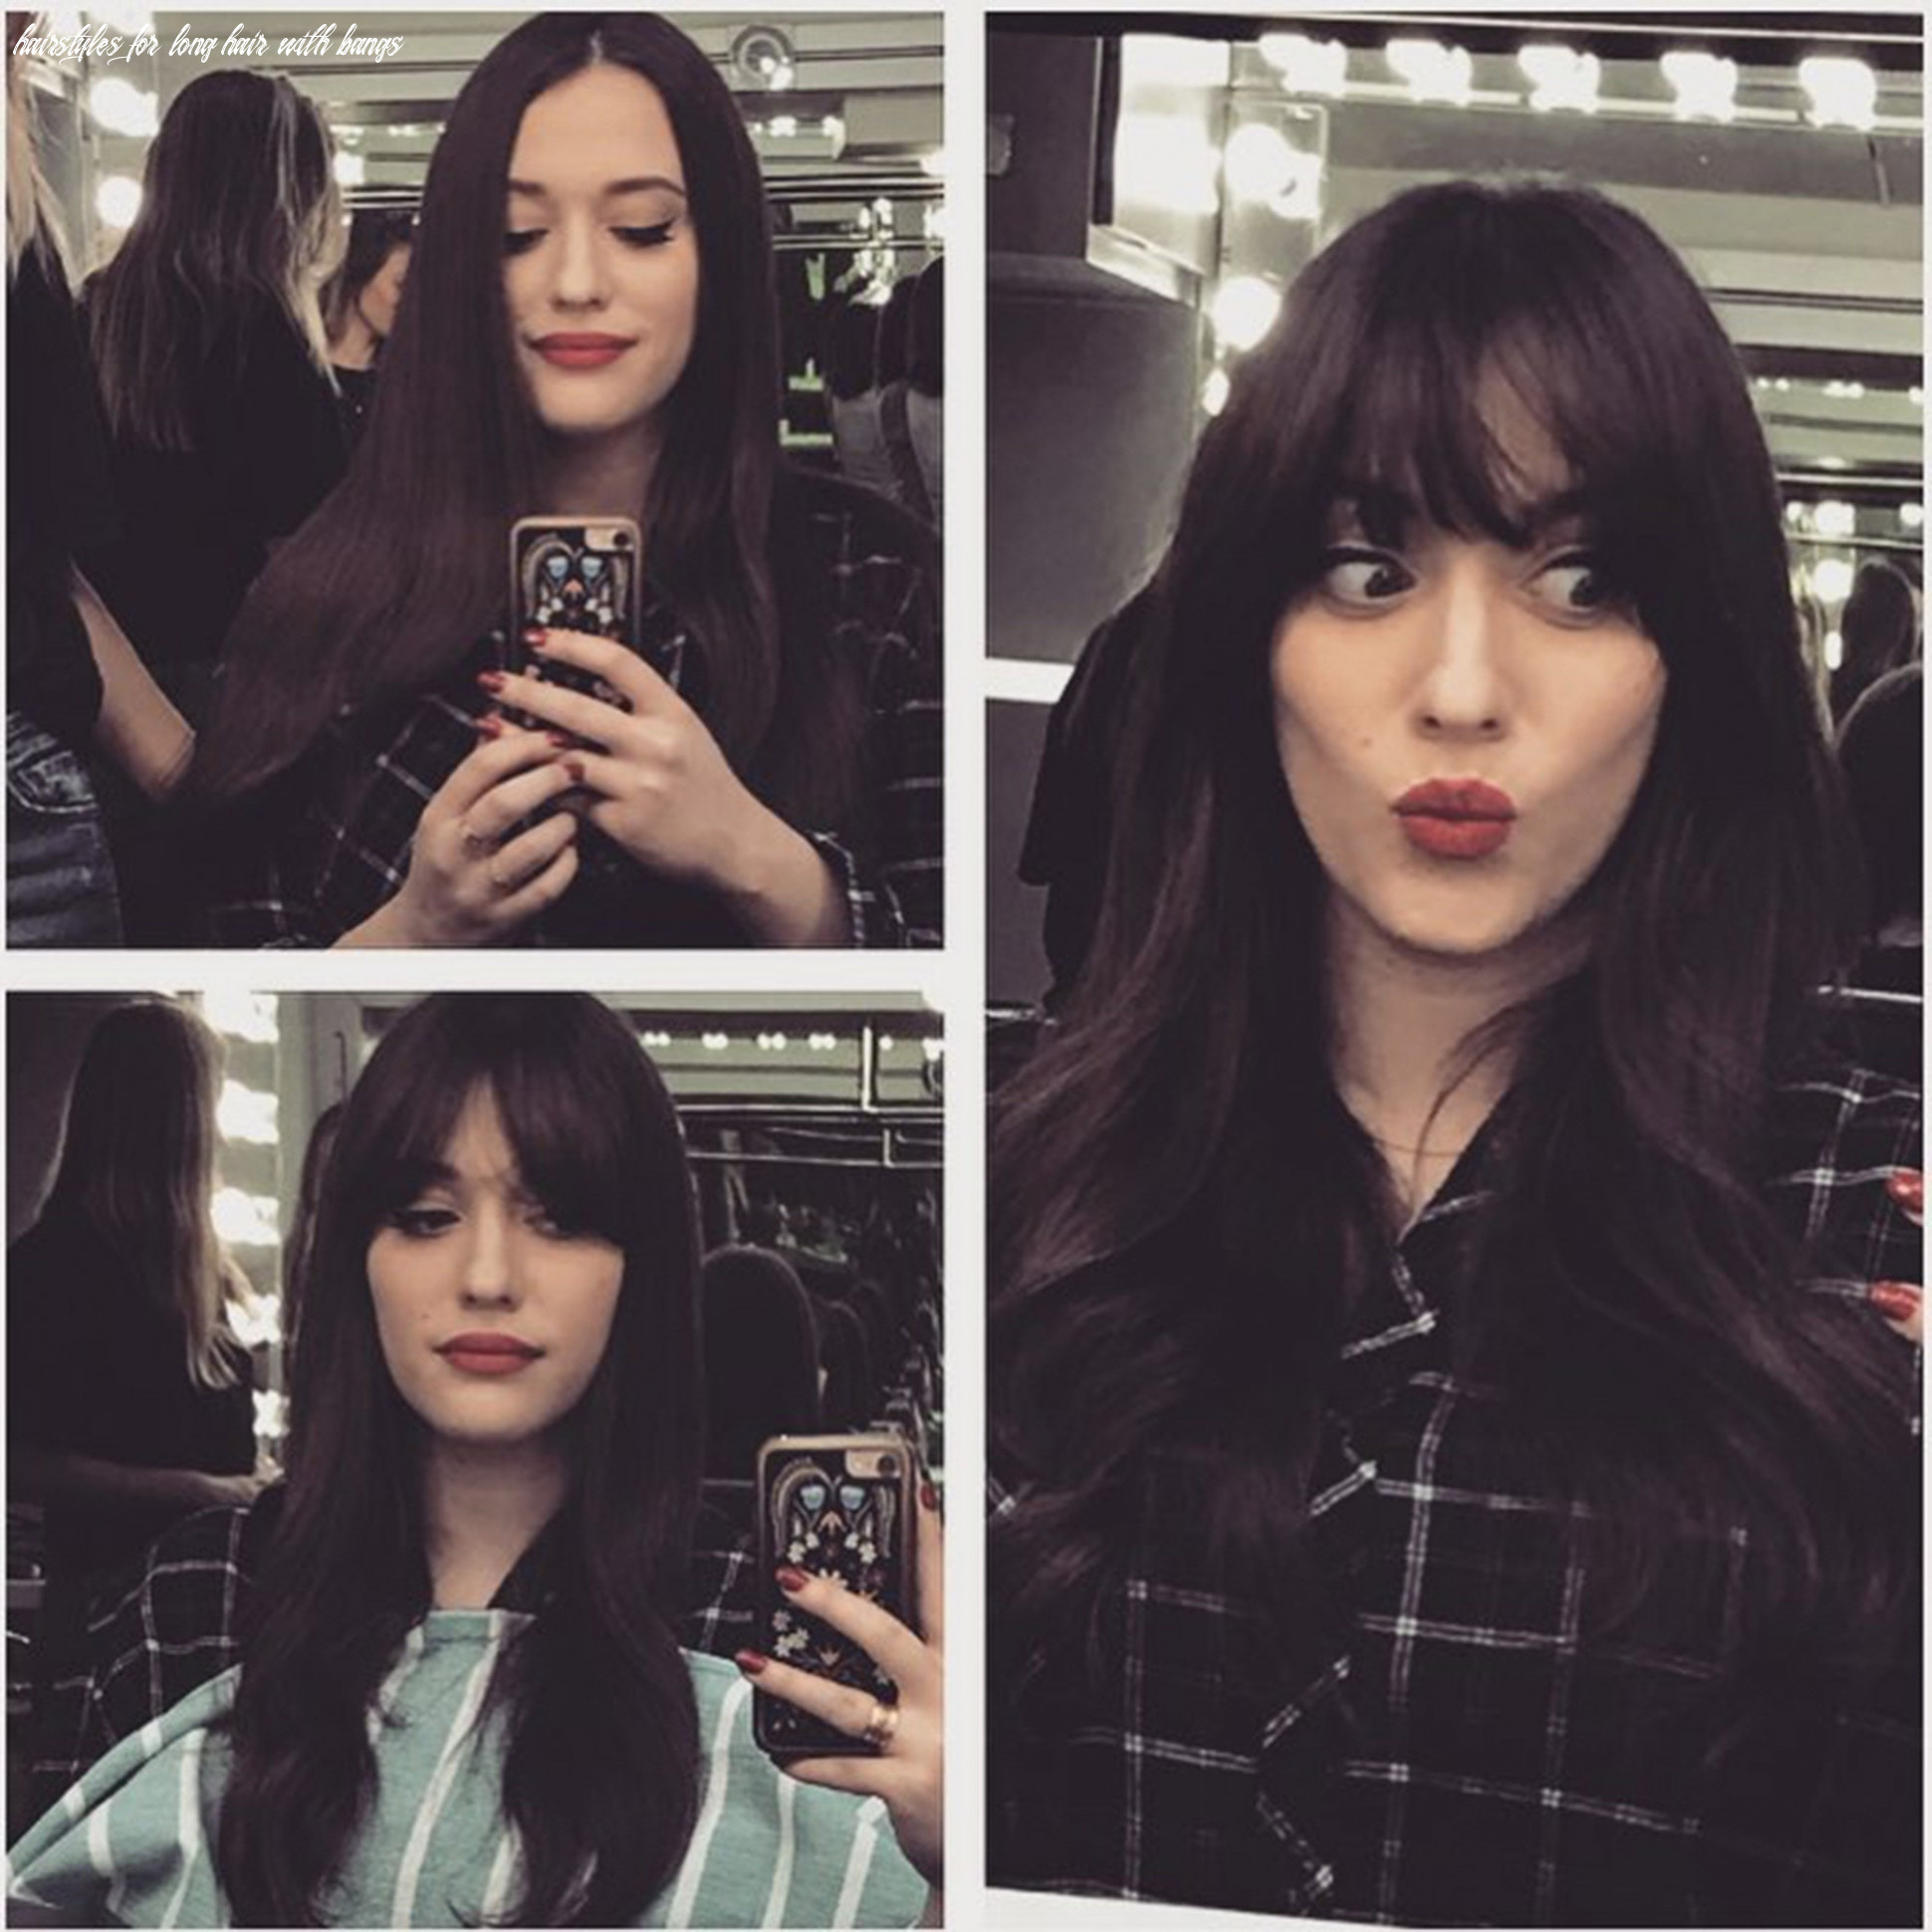 10 Best Hairstyles With Bangs - Ideas for Haircuts With Bangs | Allure